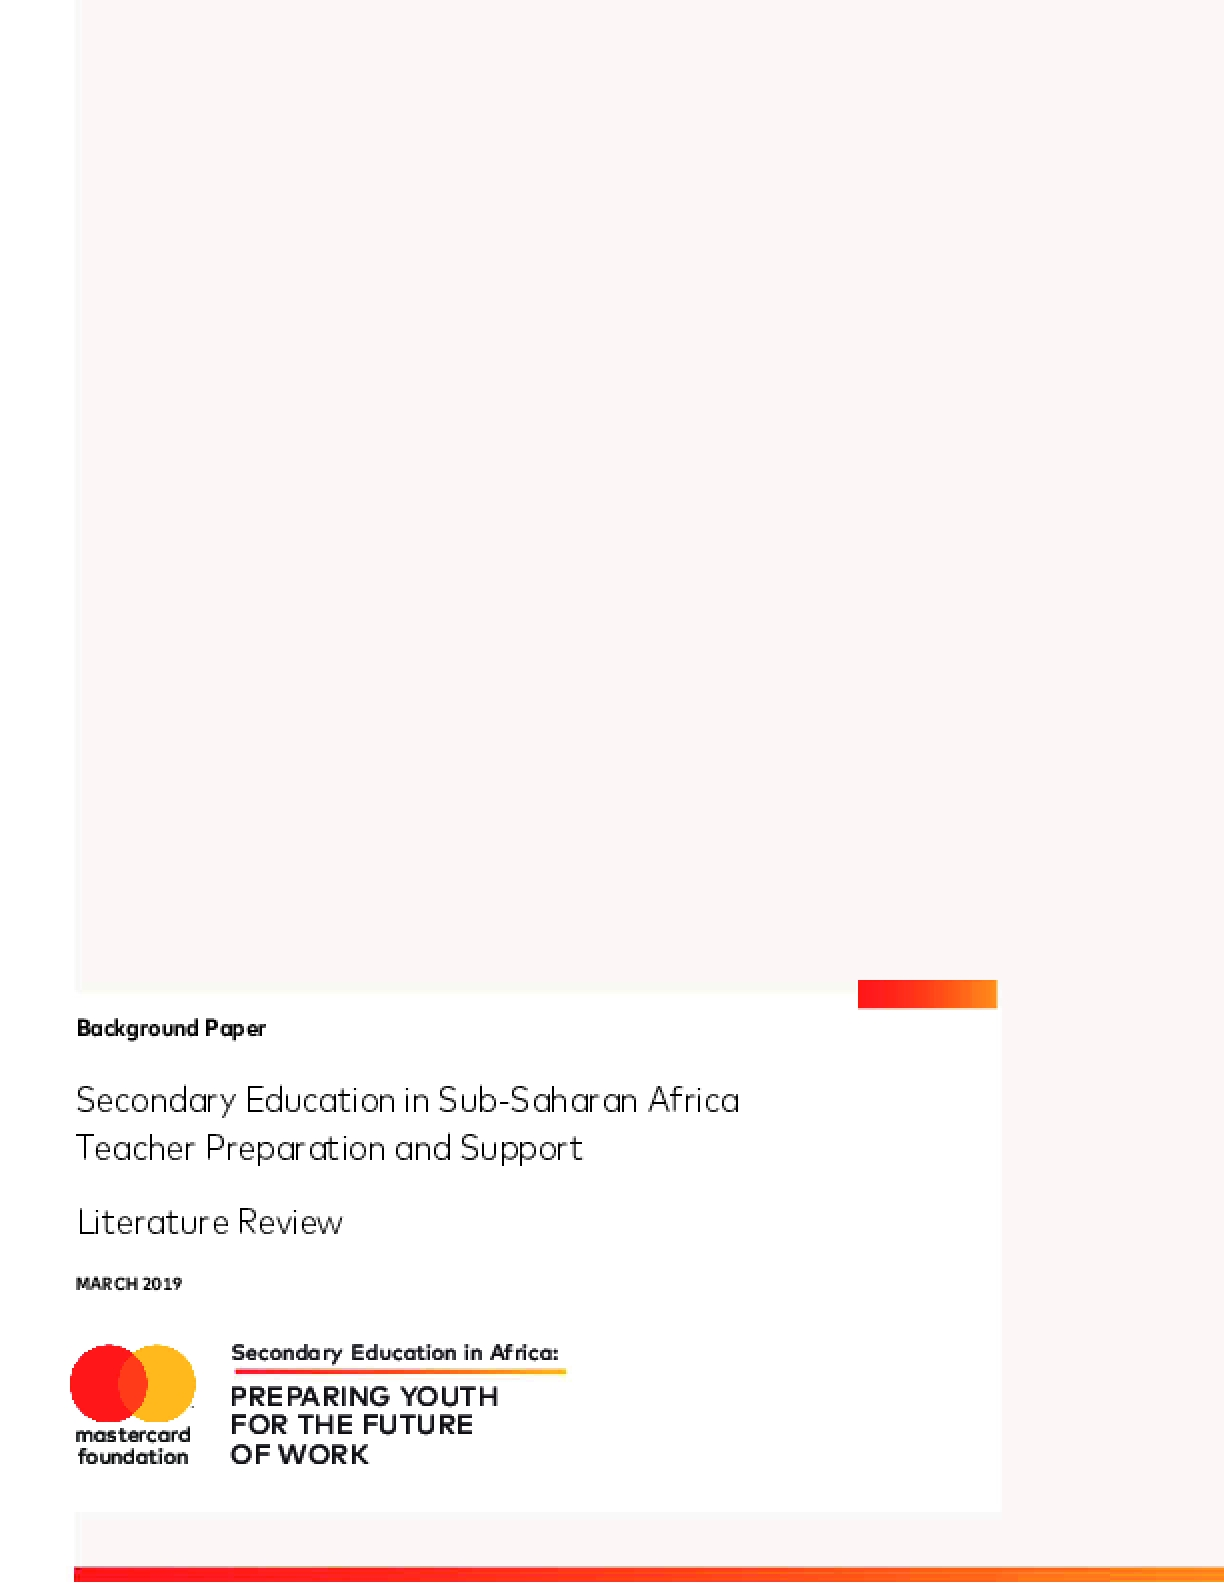 Secondary Education in Sub-Saharan Africa Teacher Preparation and Support Literature Review